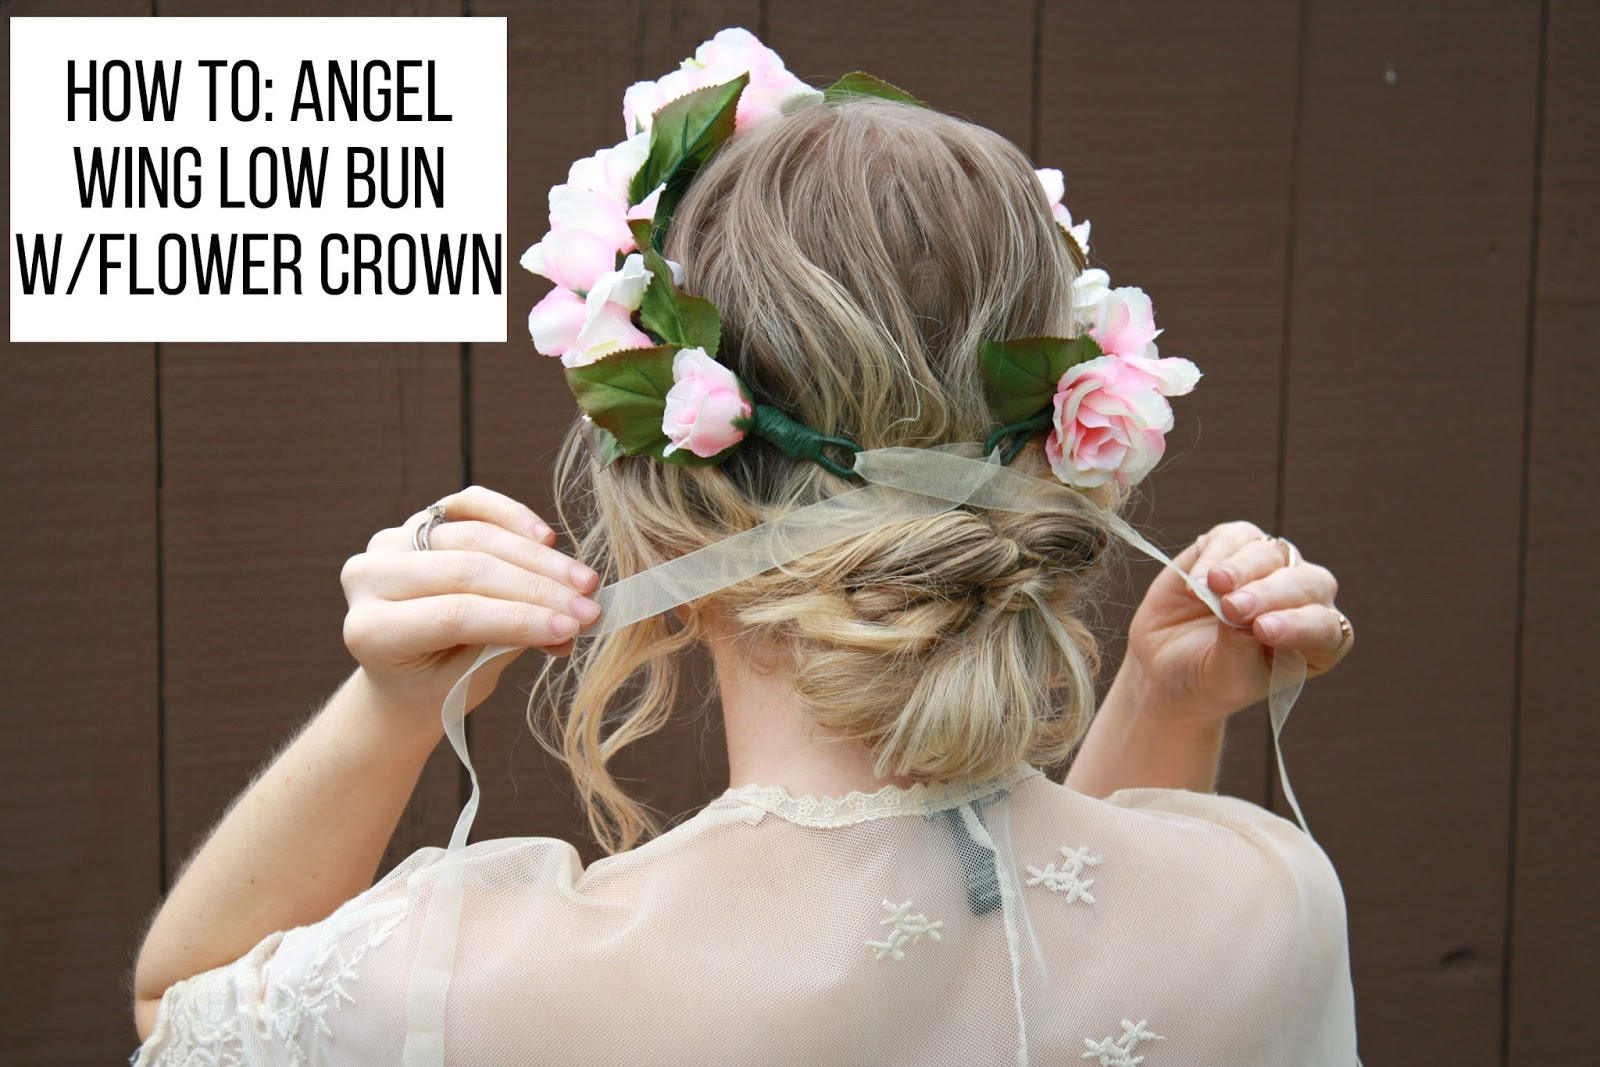 Bg by christina beauty how to angel wing low bun w flower crown beauty how to angel wing low bun w flower crown tips on pulling off a flower crown izmirmasajfo